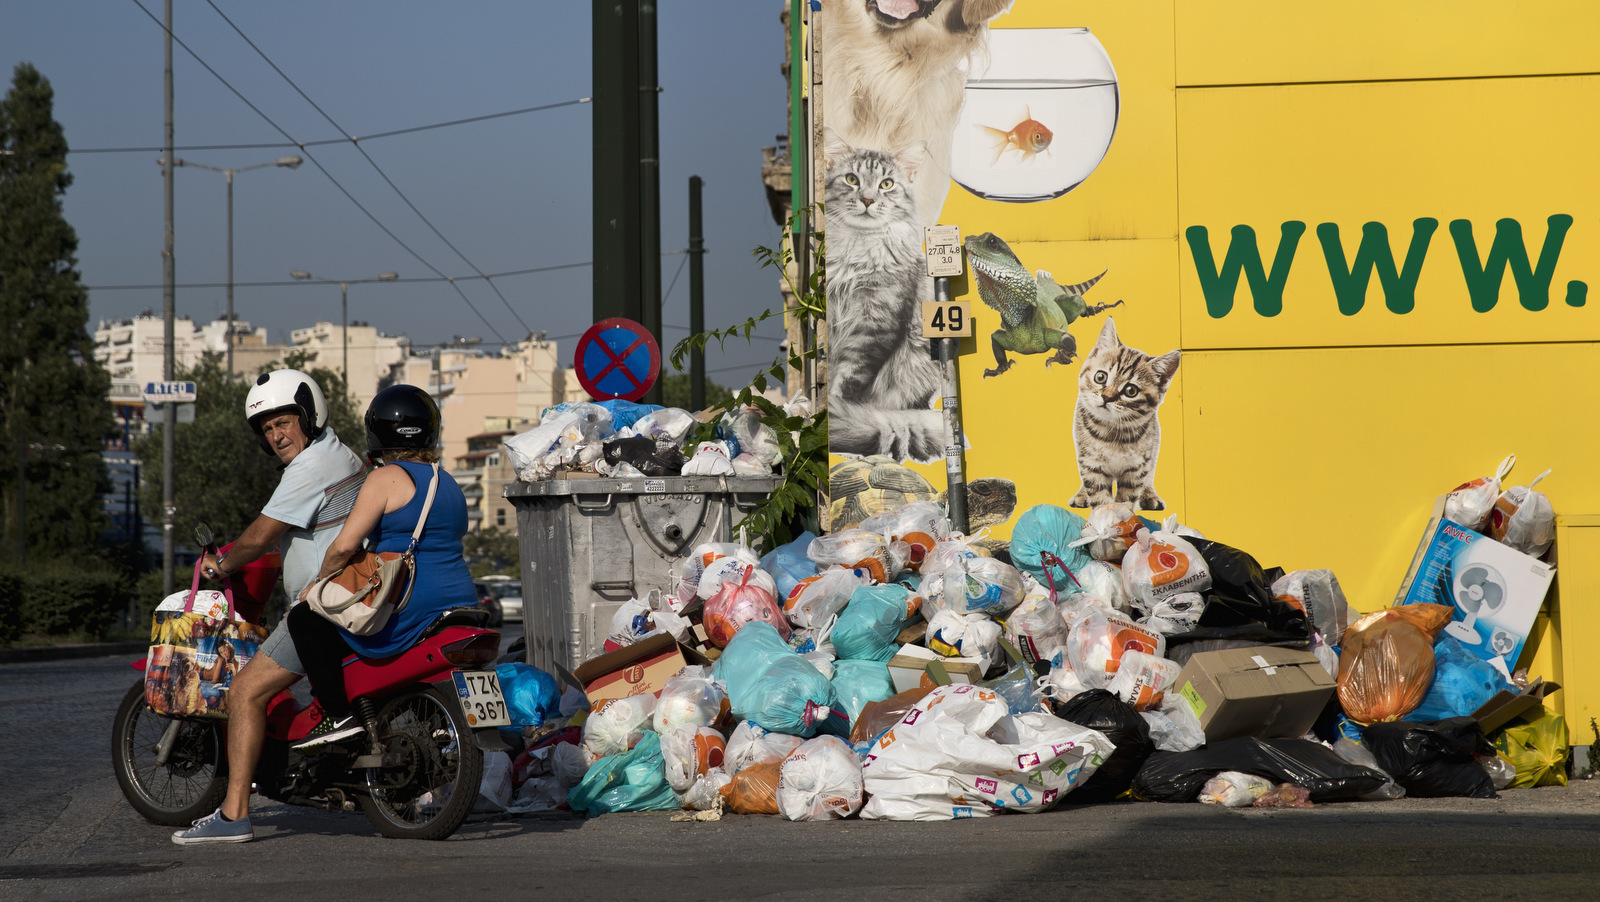 A motorcyclist looks on as he drives next to a pile of garbage in Piraeus, near Athens, on Monday, June 26, 2017. Municipality workers have been on strike for almost a week , hindering trash collection across the country. (AP/Petros Giannakouris)